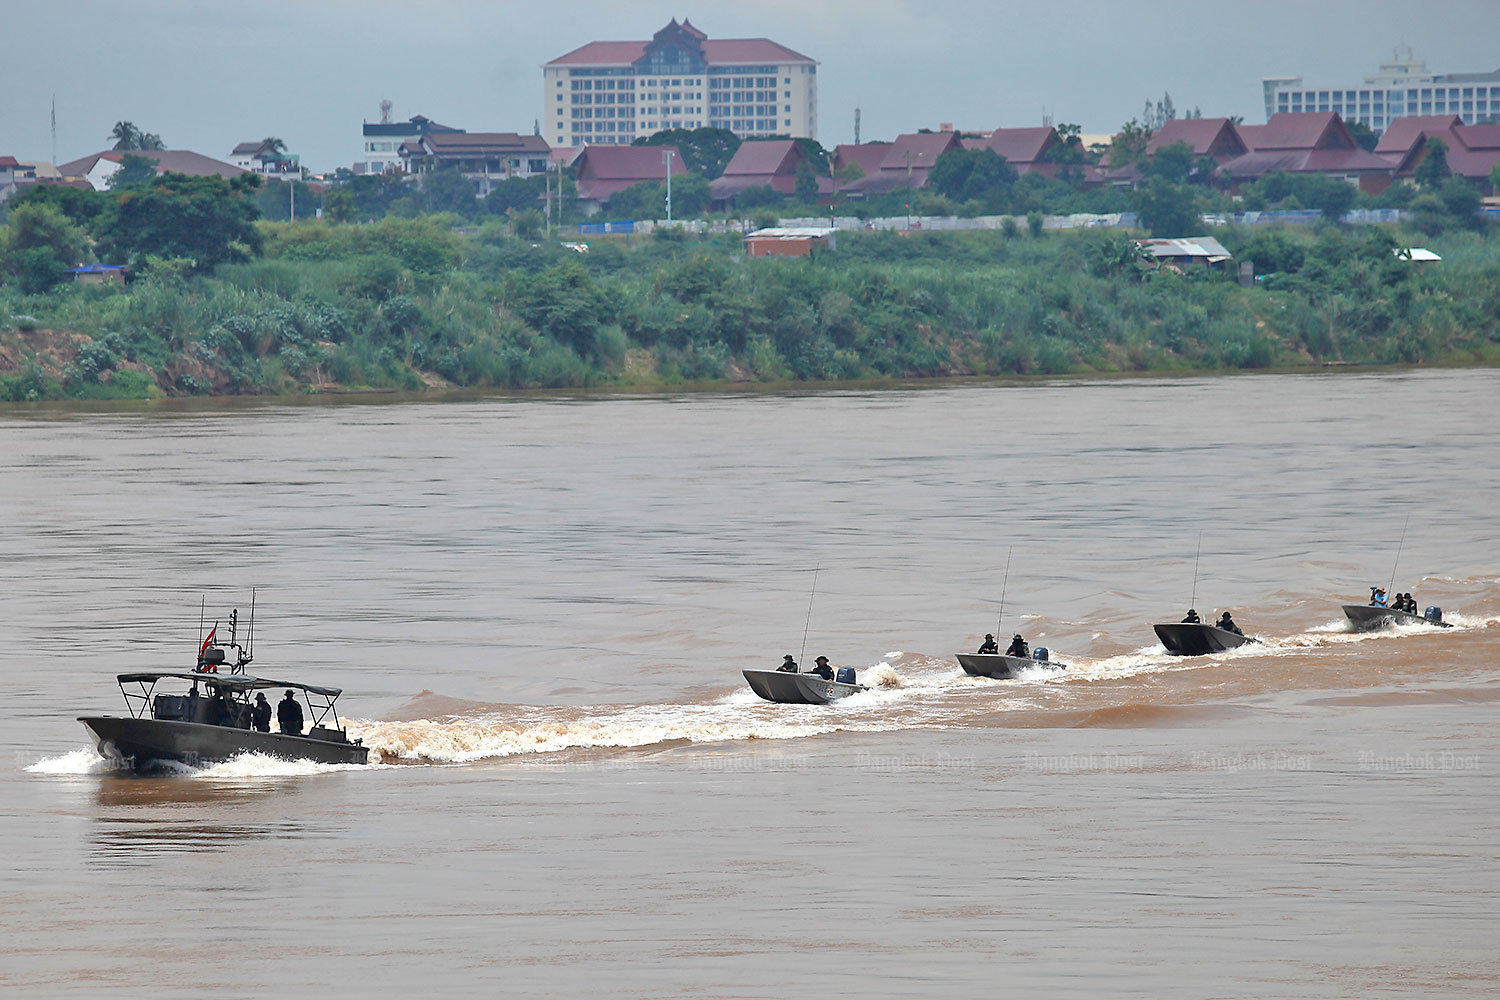 Here's the drill: The Mekong Riverine Unit holds a patrol drill along the Mekong River, a natural borderline, in Nong Khai yesterday. The unit practises a patrol manoeuvring formation as it navigates along one of the river's lanes for boat traffic. (Photo by Nutthawat Wicheanbut)